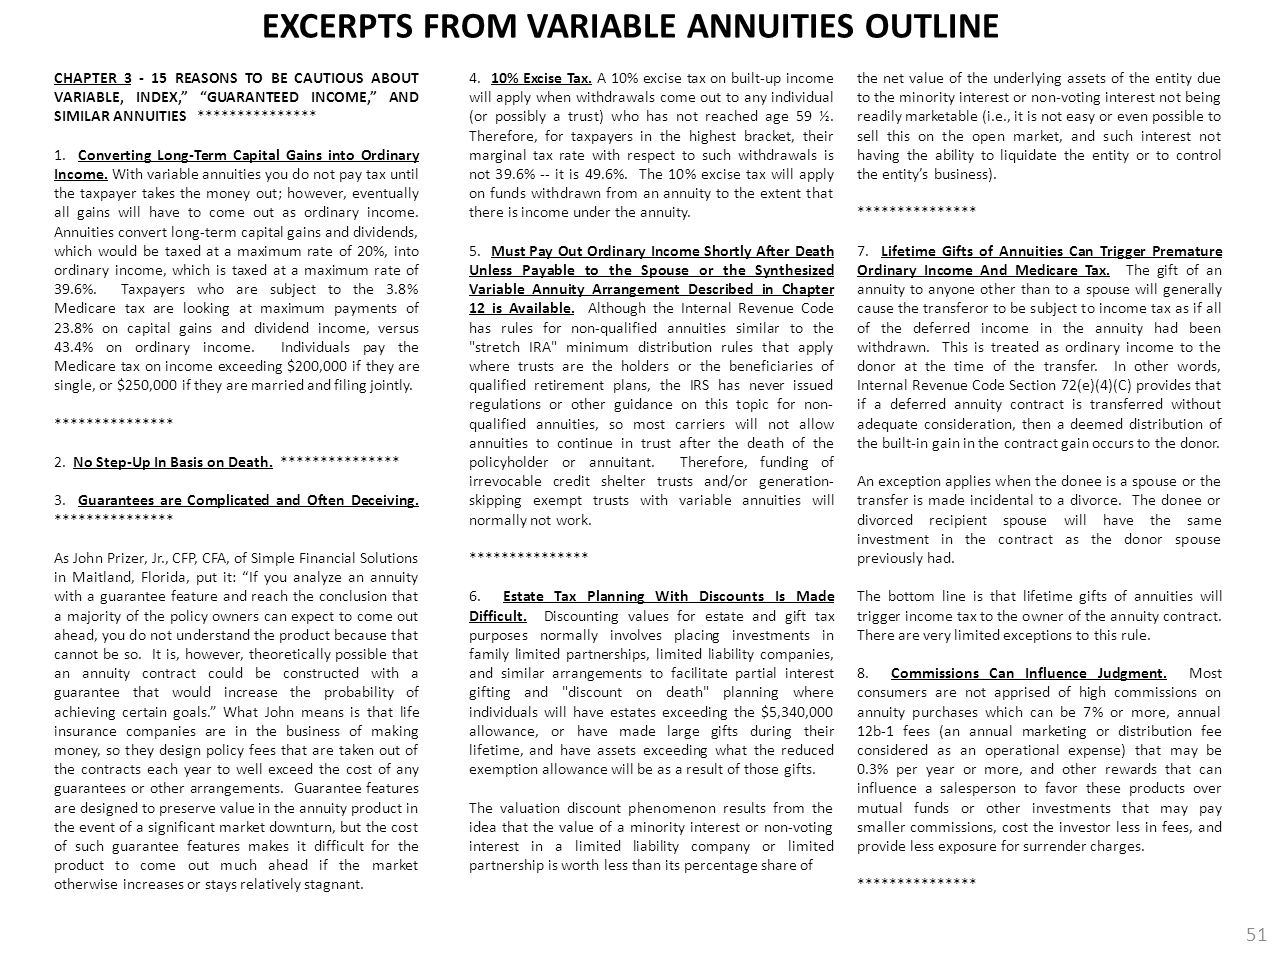 """CHAPTER 3 - 15 REASONS TO BE CAUTIOUS ABOUT VARIABLE, INDEX,"""" """"GUARANTEED INCOME,"""" AND SIMILAR ANNUITIES *************** 1. Converting Long-Term Capit"""